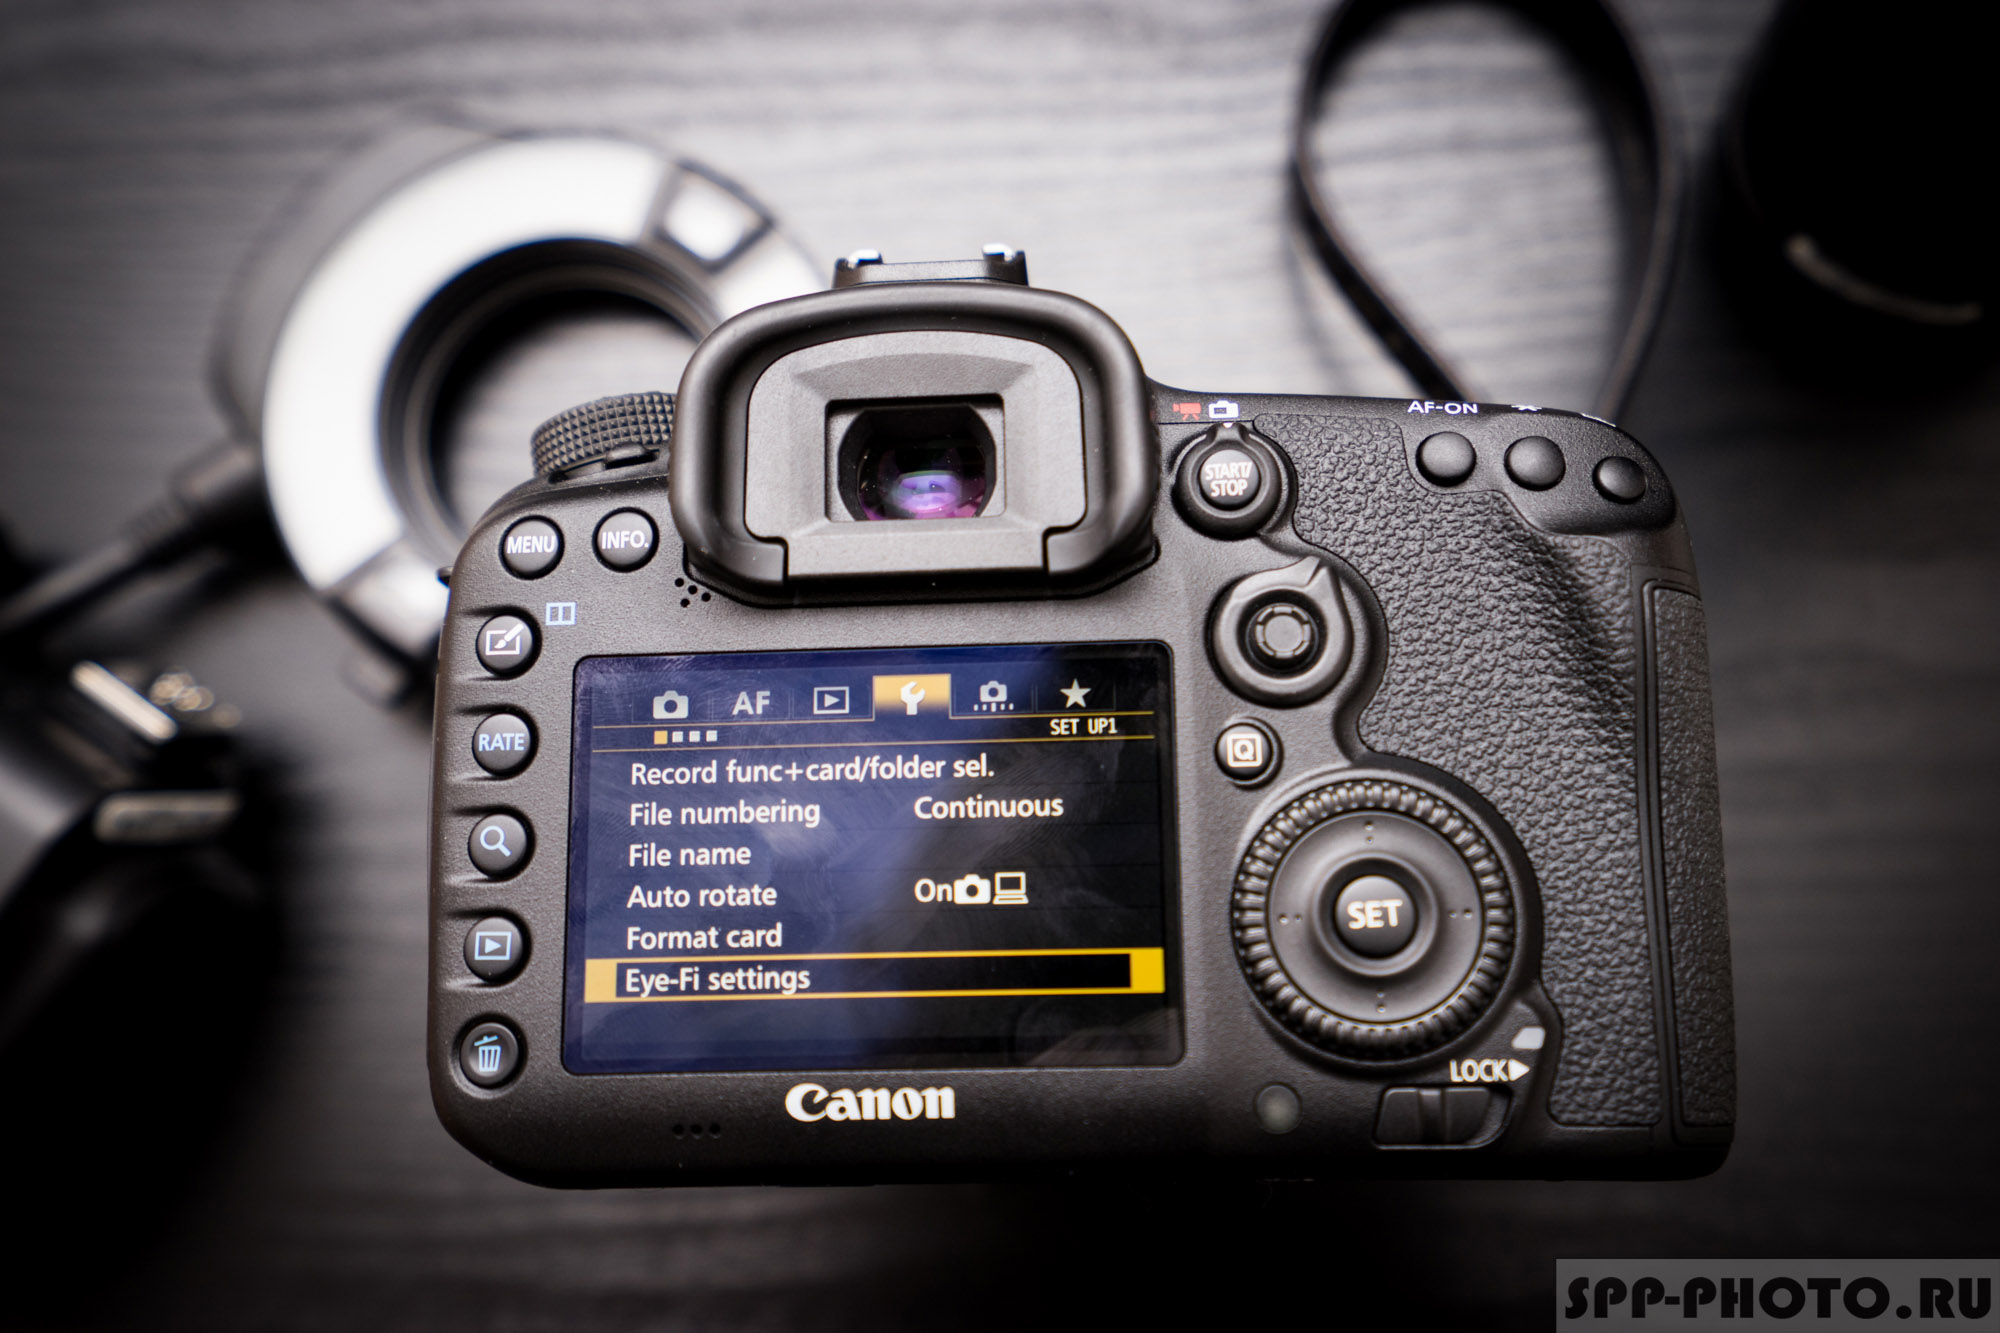 Camera settings for group photos